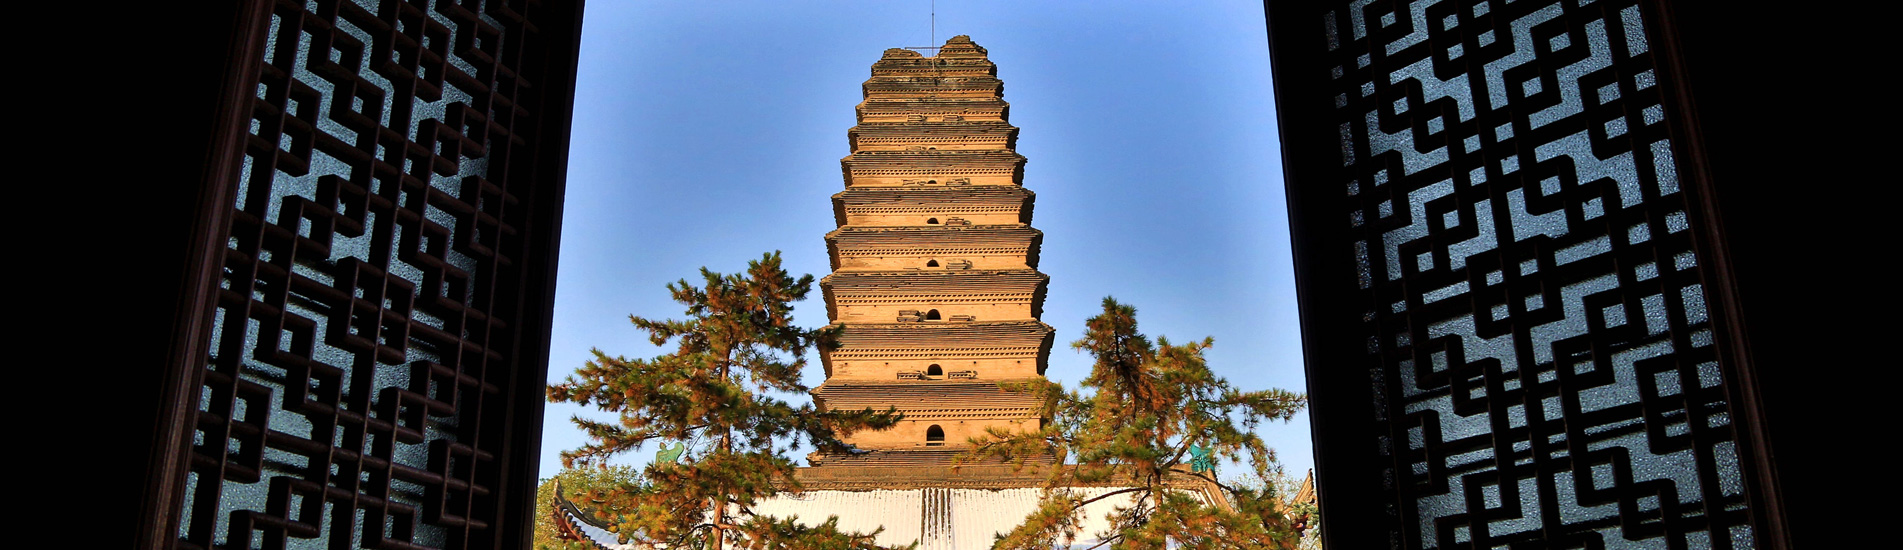 the Big Goose Pagoda in Xian